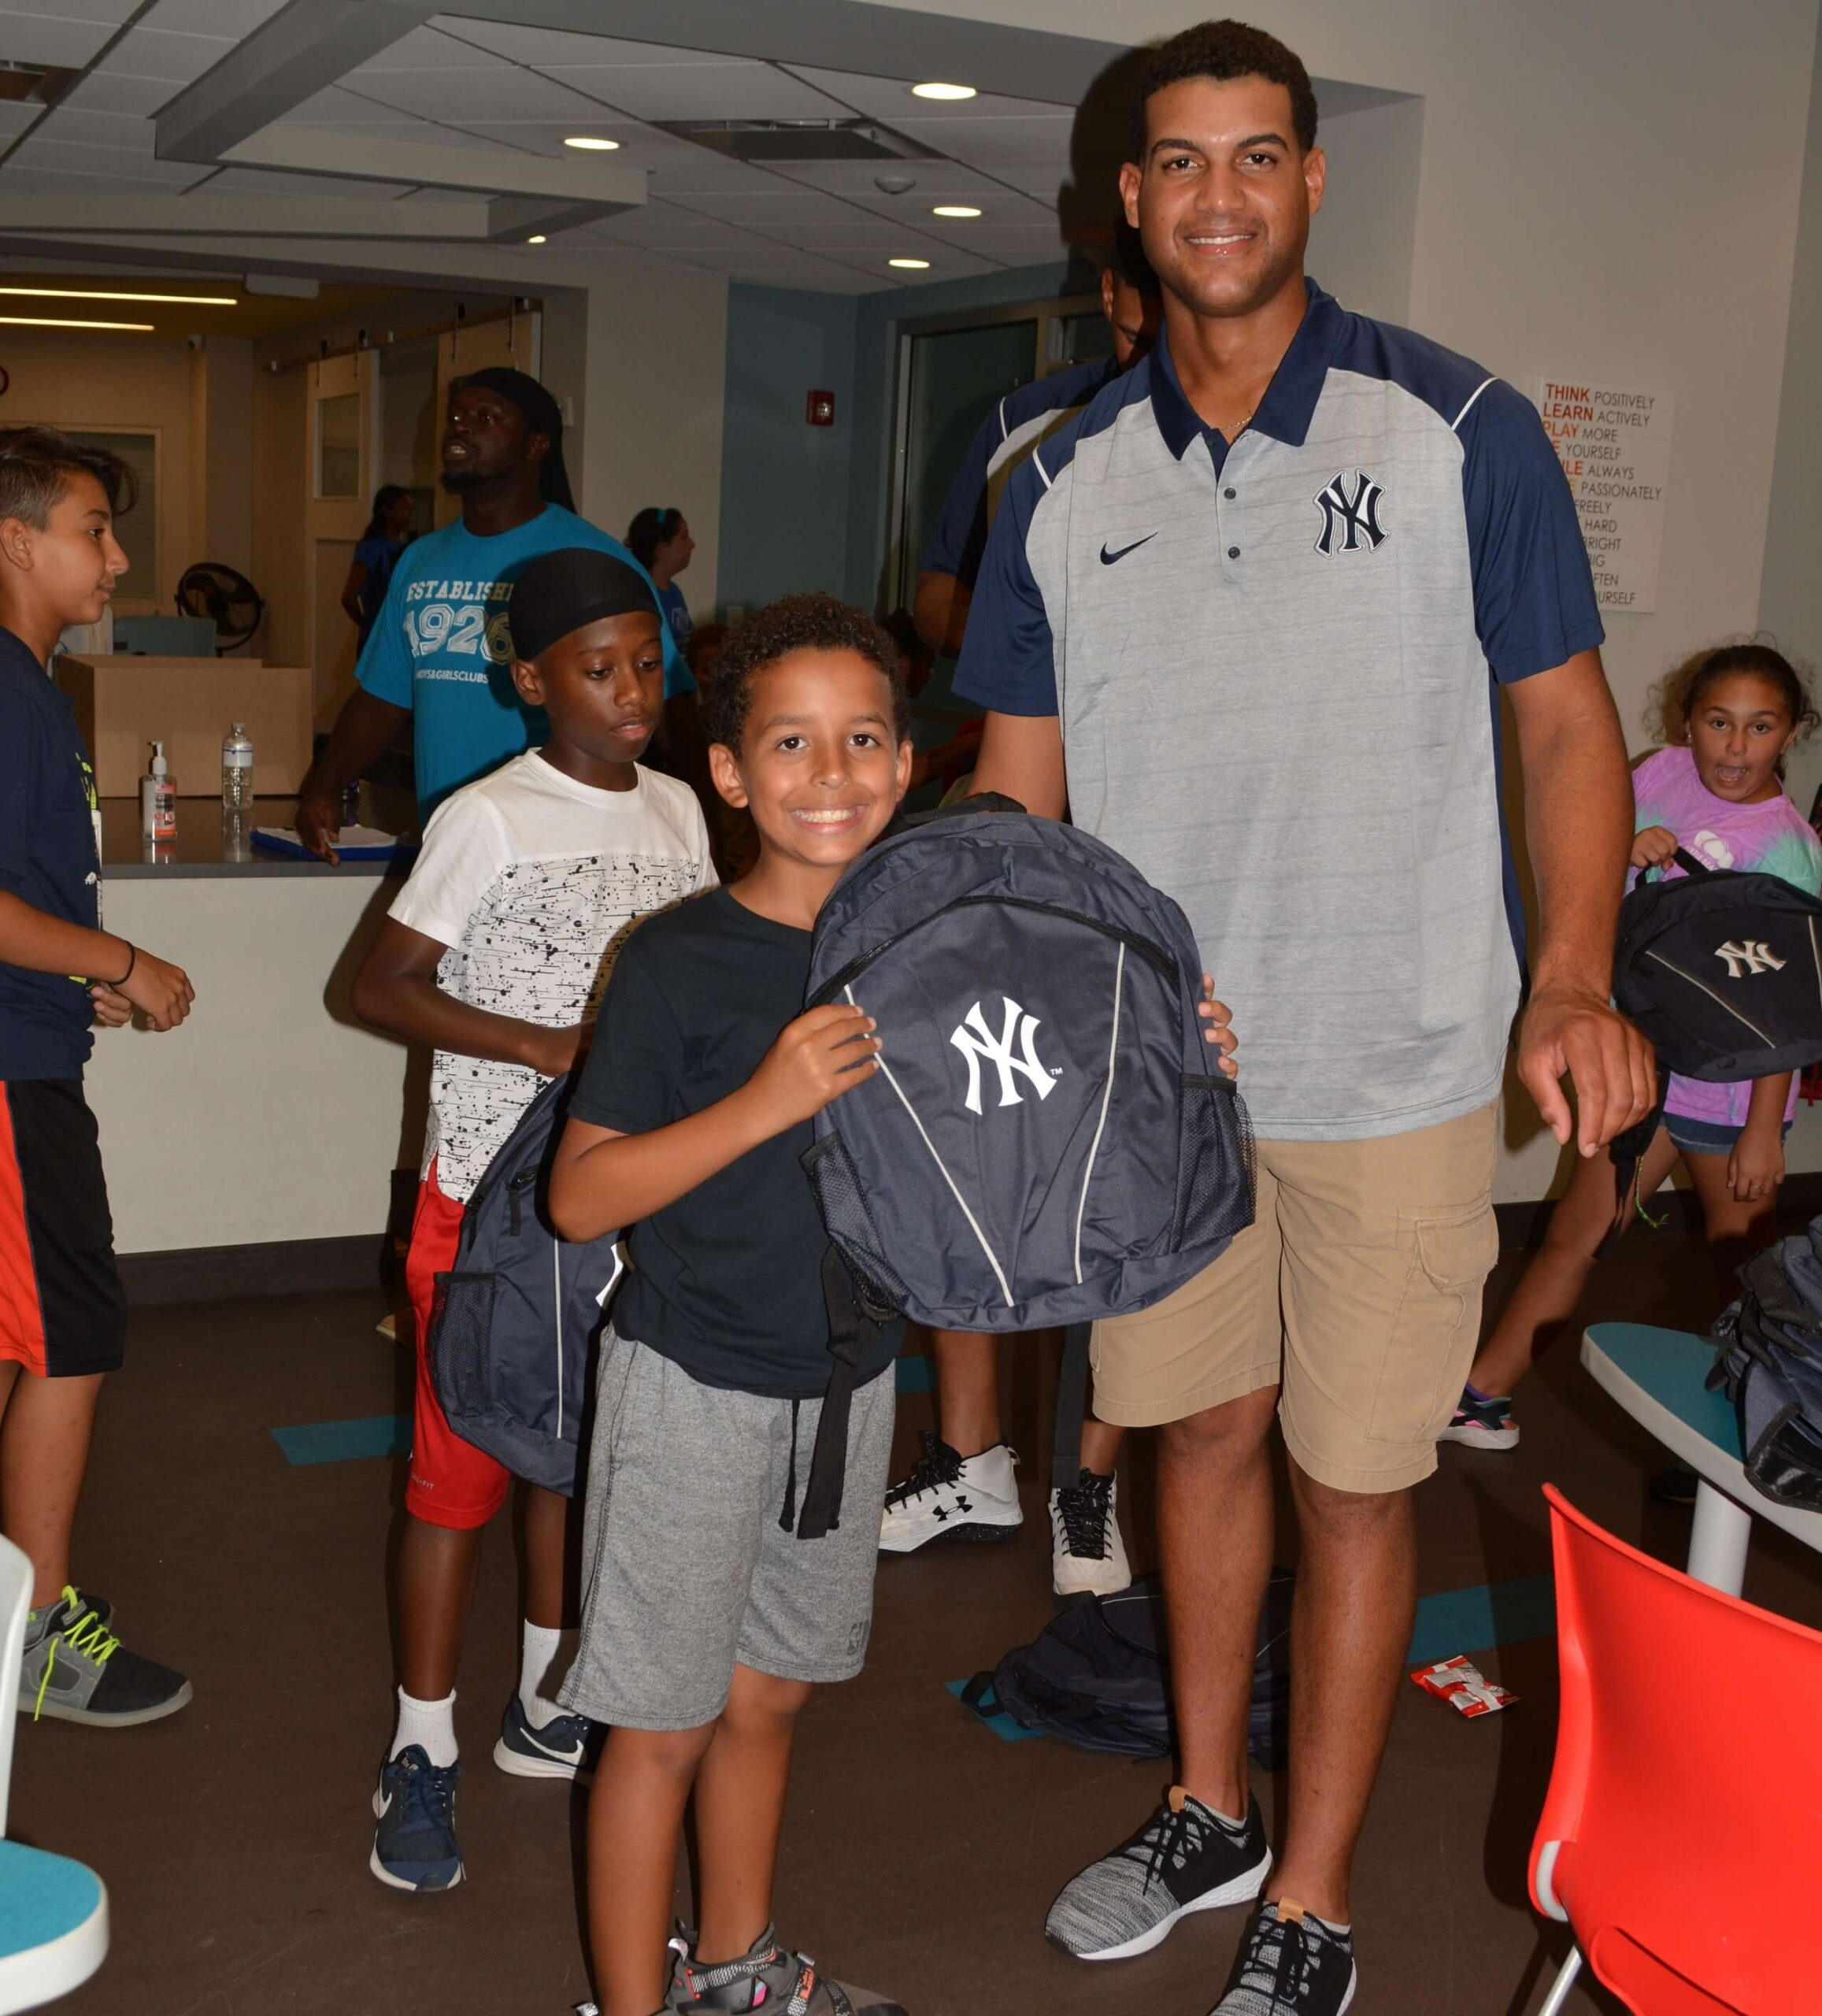 Backpack Distribution with the Yankees